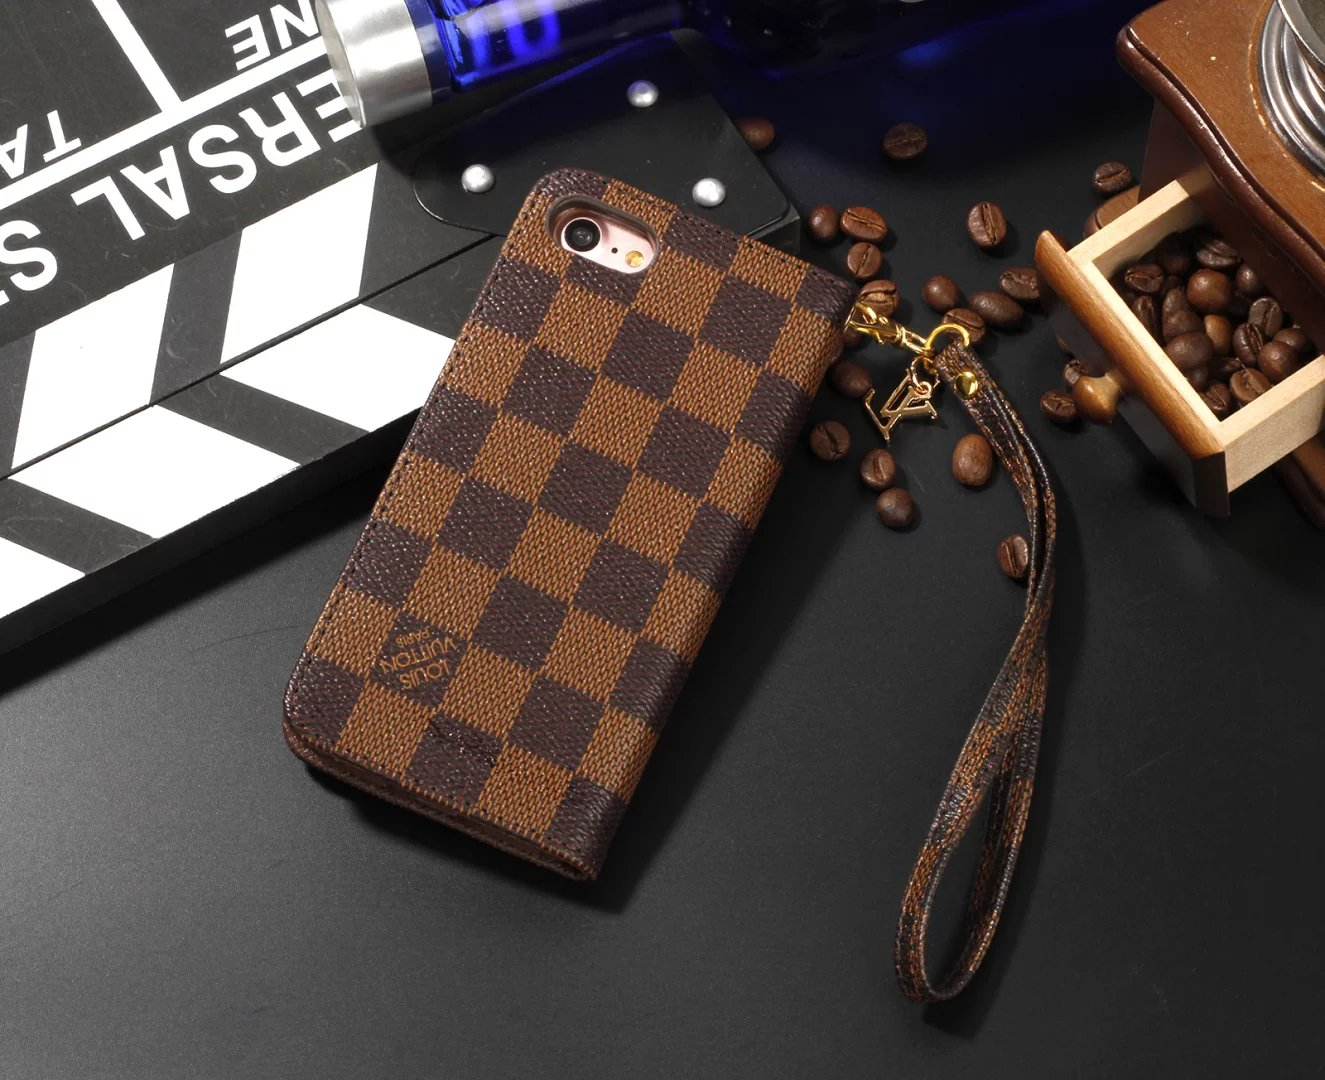 hülle iphone iphone hülle drucken Louis Vuitton iphone6s plus hülle iphone wann kommt das neue ipohn 6s iphone 6 neu handy schutzhülle mit eigenem foto grös6sr als design handyhülle